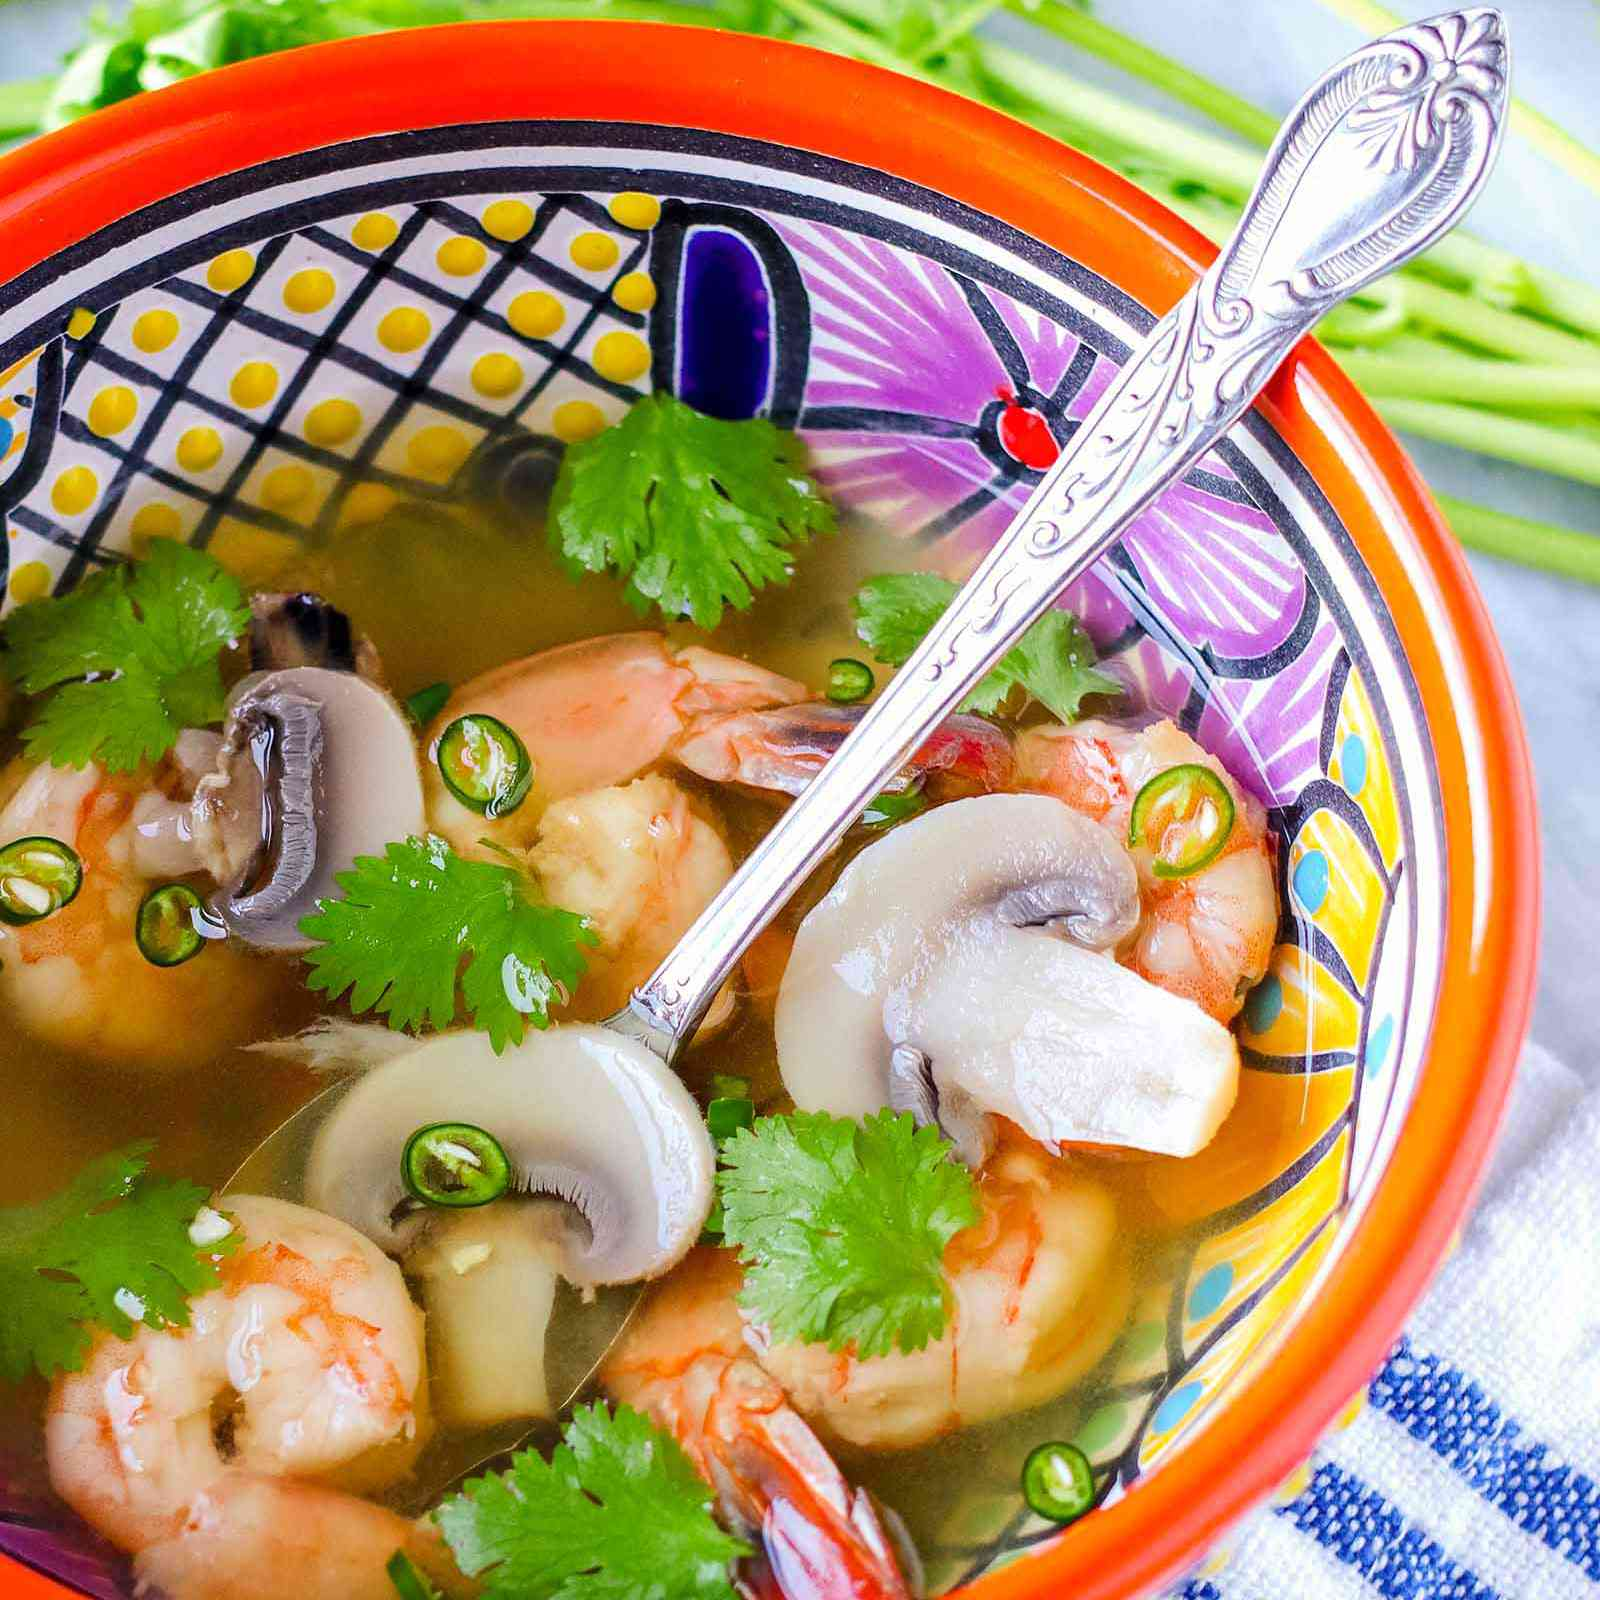 Vertical view of brightly patterned bowl with a silver spoon inside. Tom yum soup with shrimp, cilantro and mushrooms in a light broth are in the bowl. Above the bowl are stems of cilantro and below the bowl is a blue striped linen.